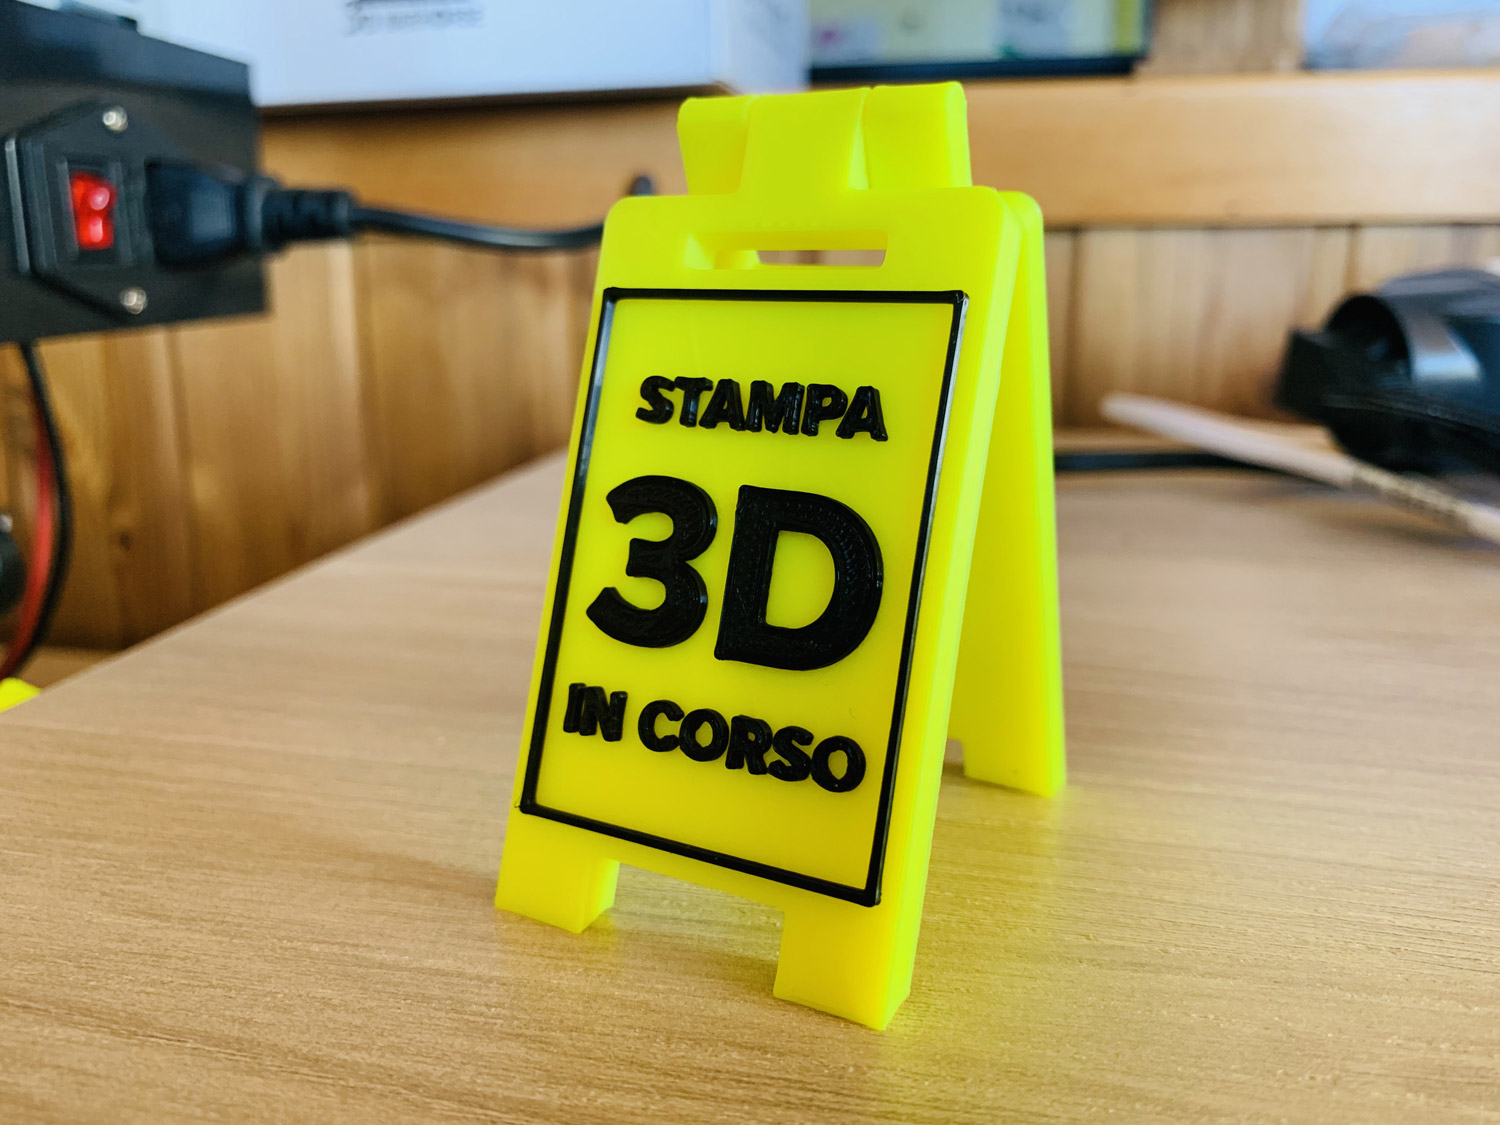 Stampa 3D in corso - mini floor stand